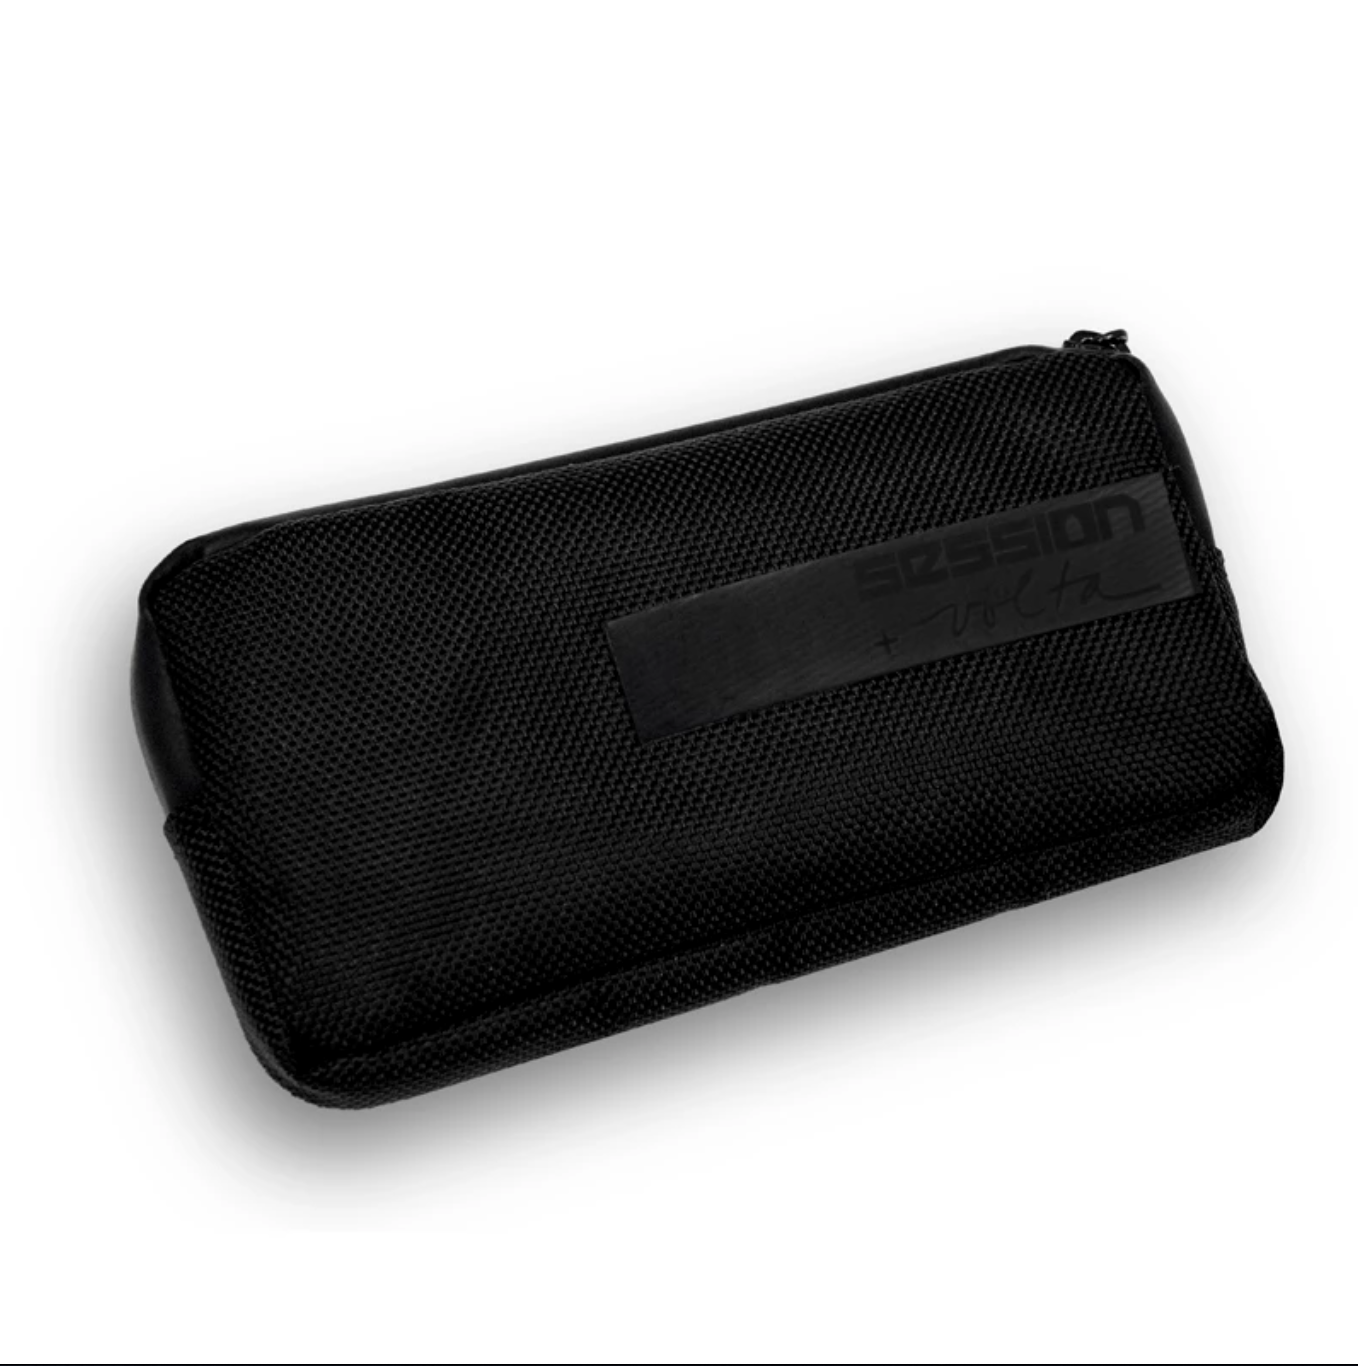 RAINPROOF CYCLING CASE / WALLET - SESSION + VOLTA COLAB